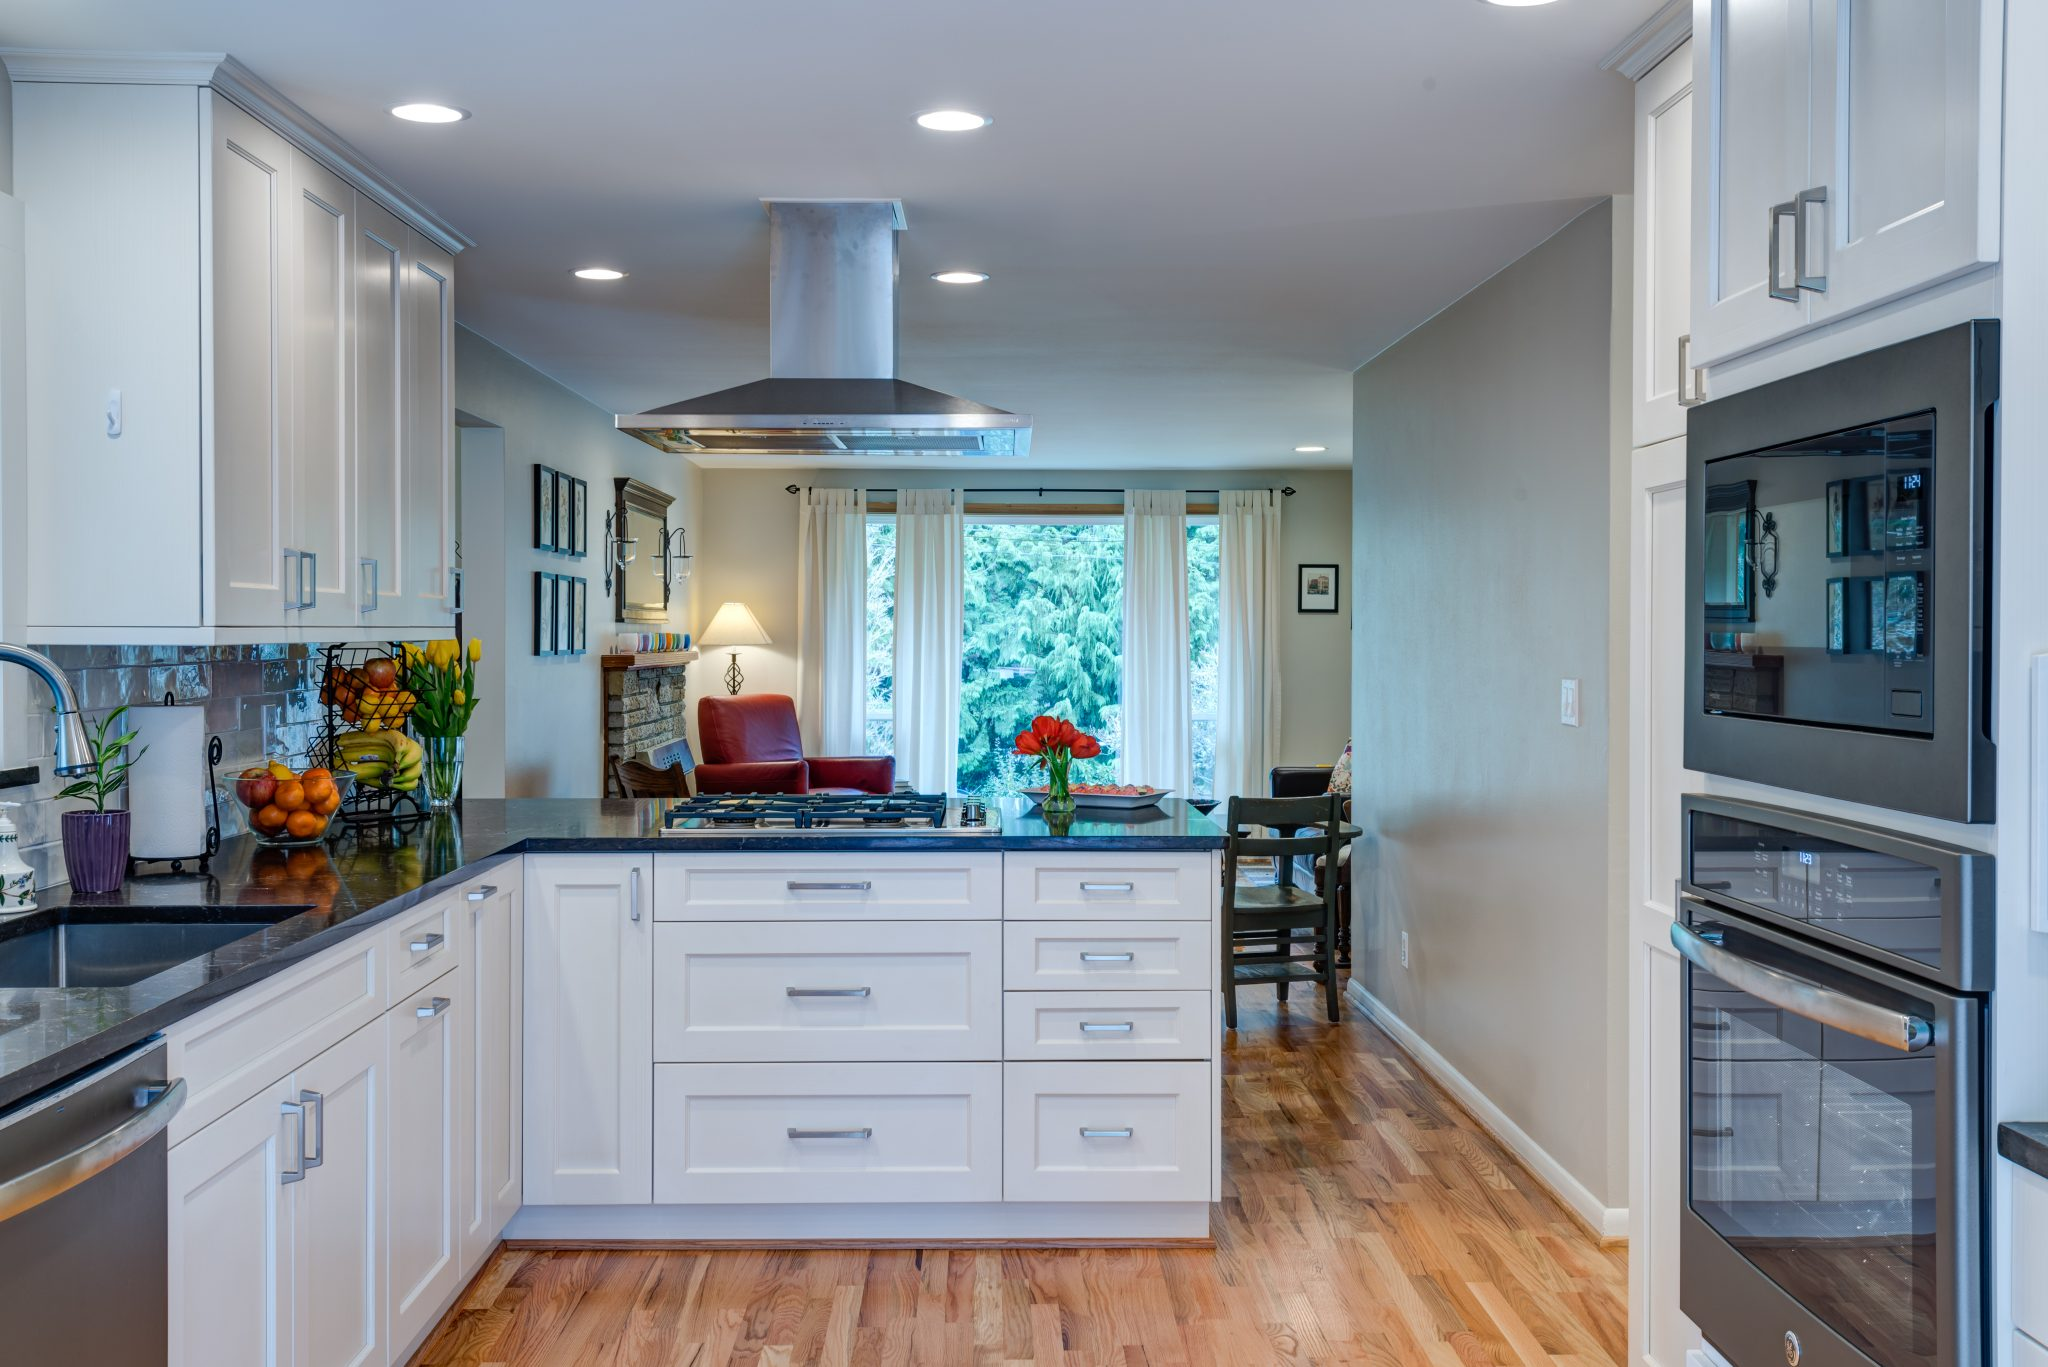 2018 Remodeled Home Tour – Irons Brothers Construction: Remodeling ...